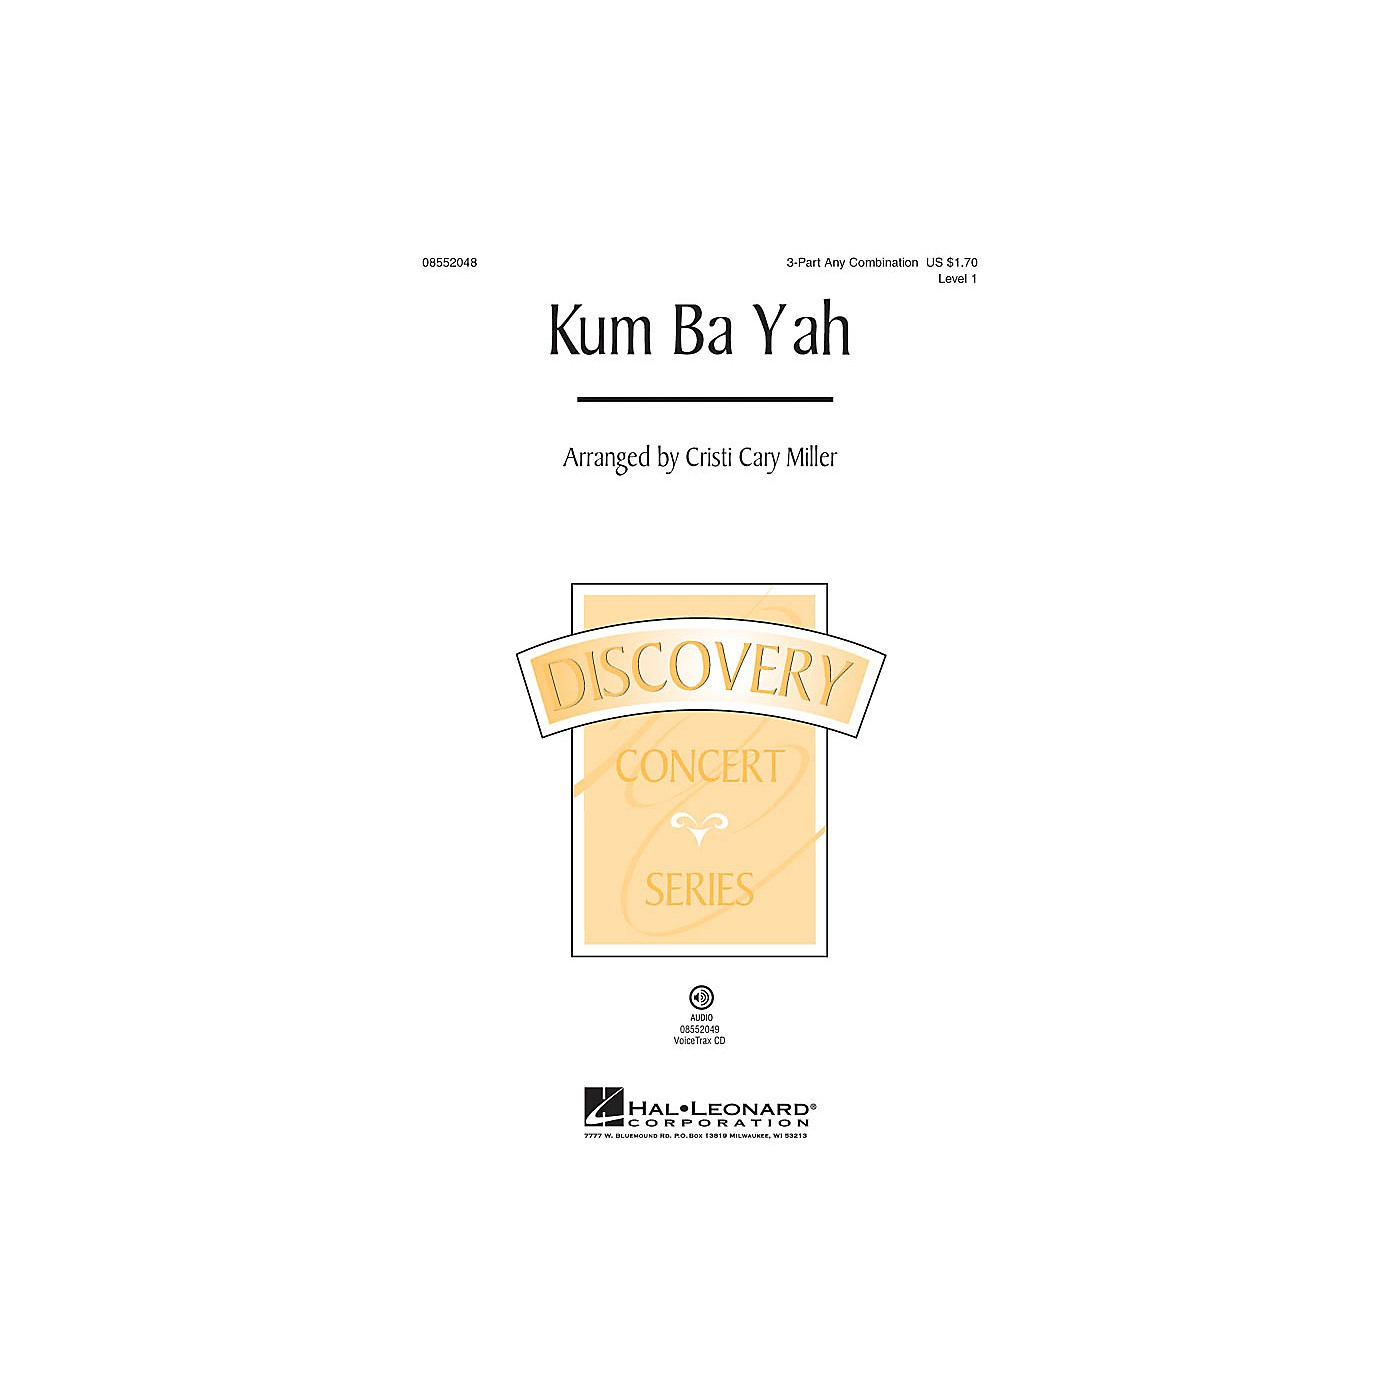 Hal Leonard Kum Ba Yah (Discovery Level 1) VoiceTrax CD Arranged by Cristi Cary Miller thumbnail